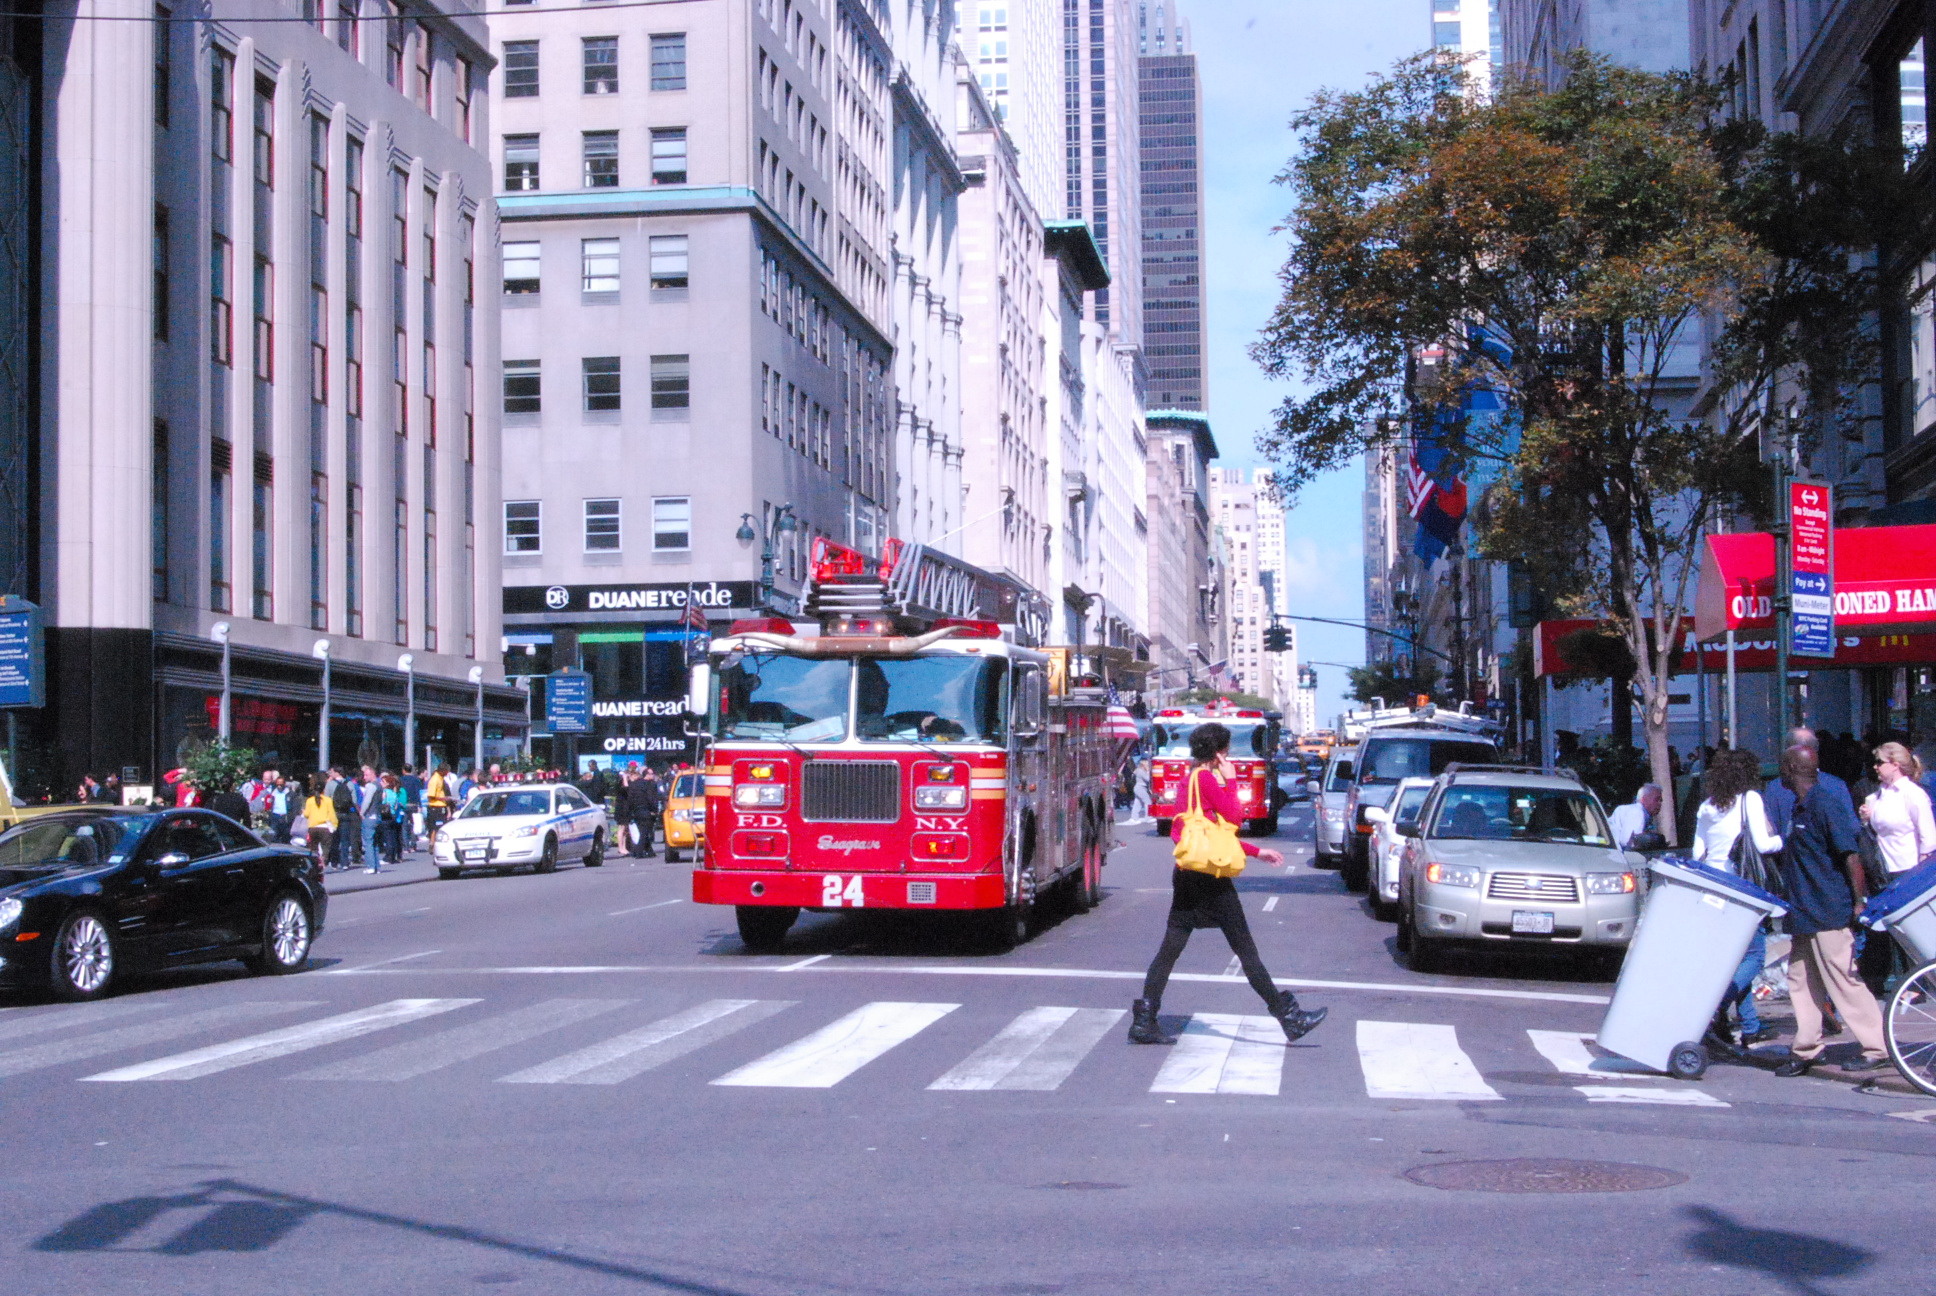 Oct 12 2010 Manhattan NY from 5th Ave from 33 Street avenuew view to uptown firetrucks